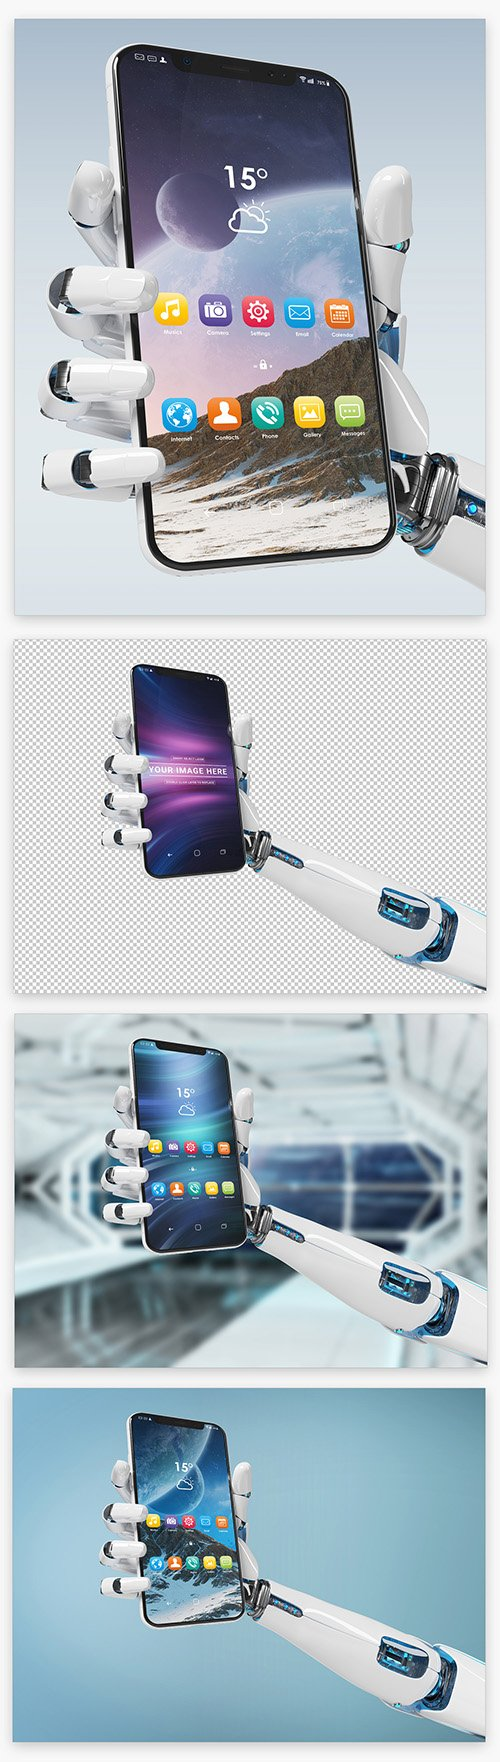 Isolated Smartphone in Robot Hand Mockup 220288384 PSDT